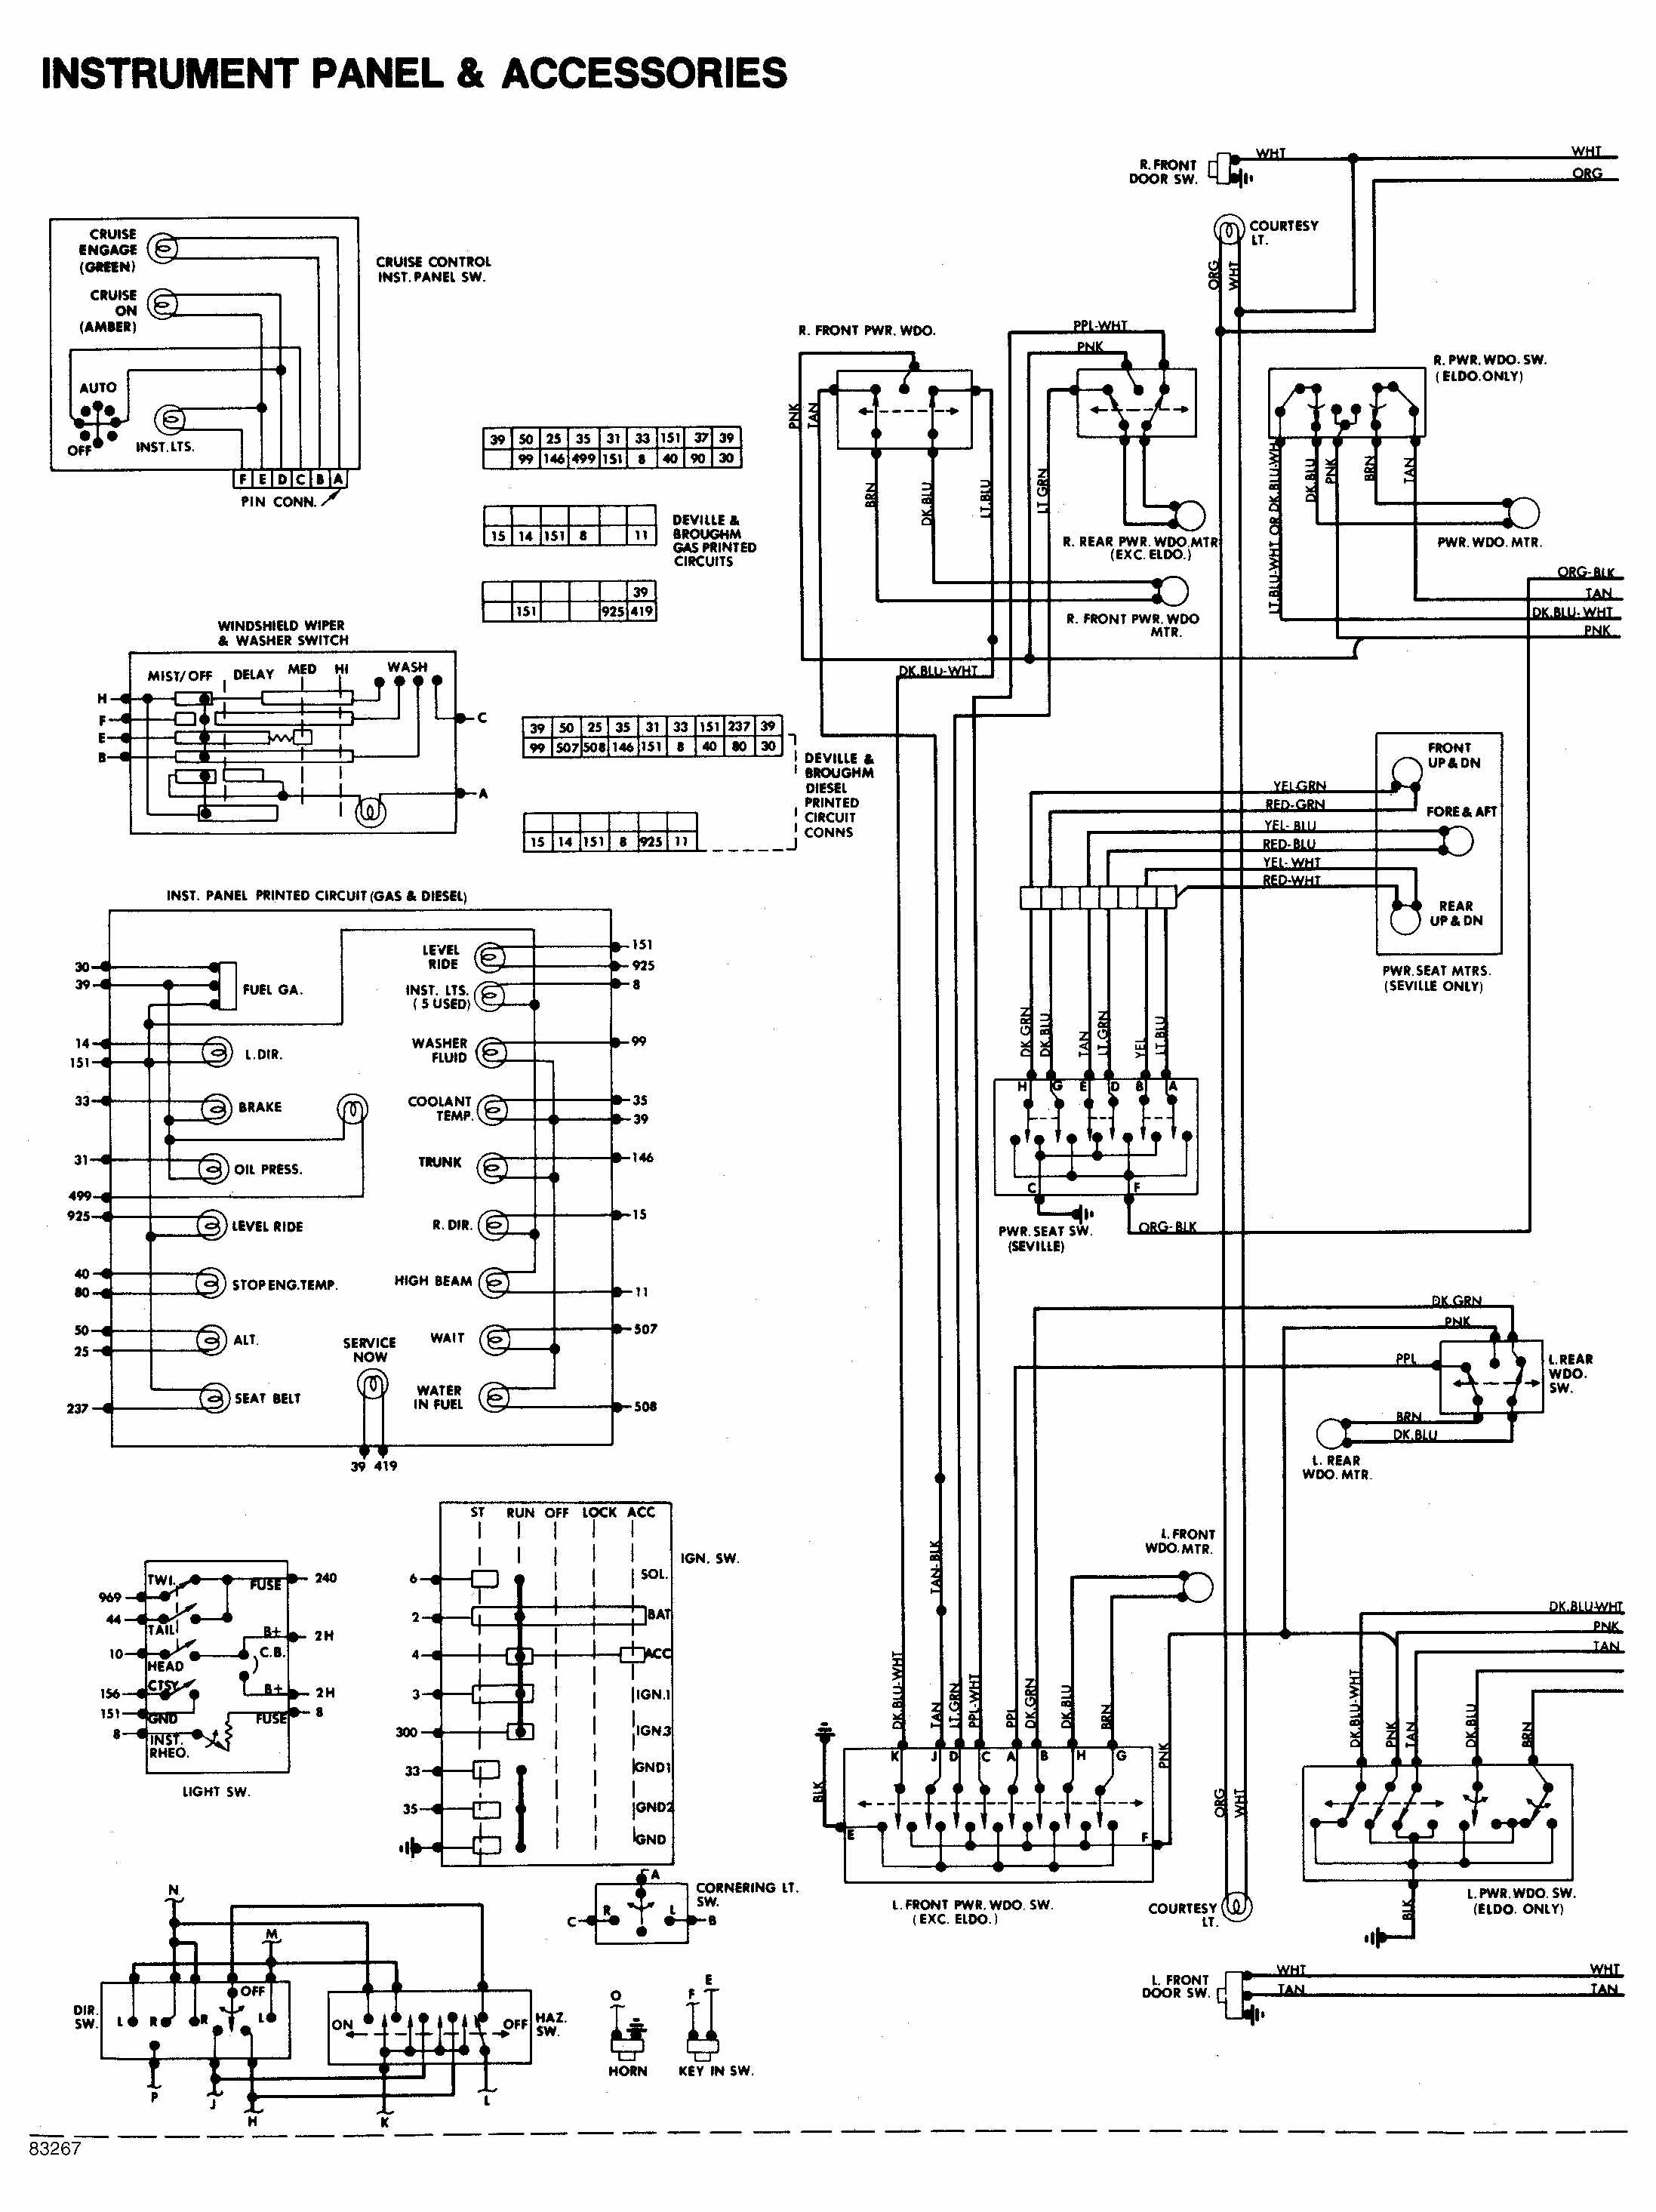 instrument panel and accessories wiring diagram of 1984 cadillac deville gm wiring diagrams gm wiring diagrams online \u2022 wiring diagrams j 1985 Buick Regal at gsmportal.co